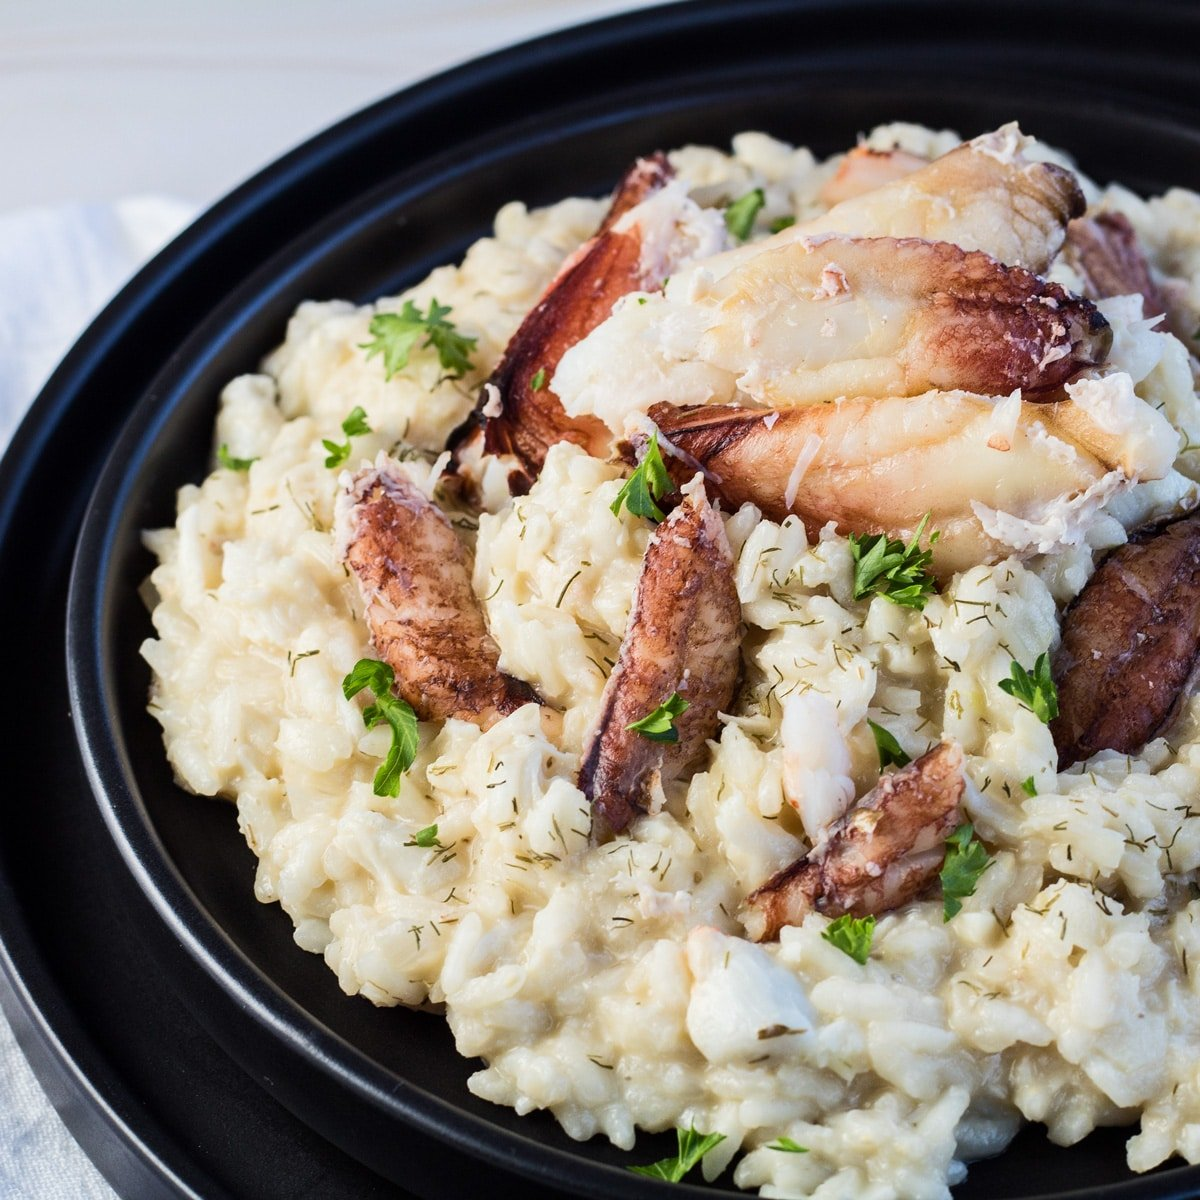 Crab risotto served on blackplate with crab meat and parsley garnish.